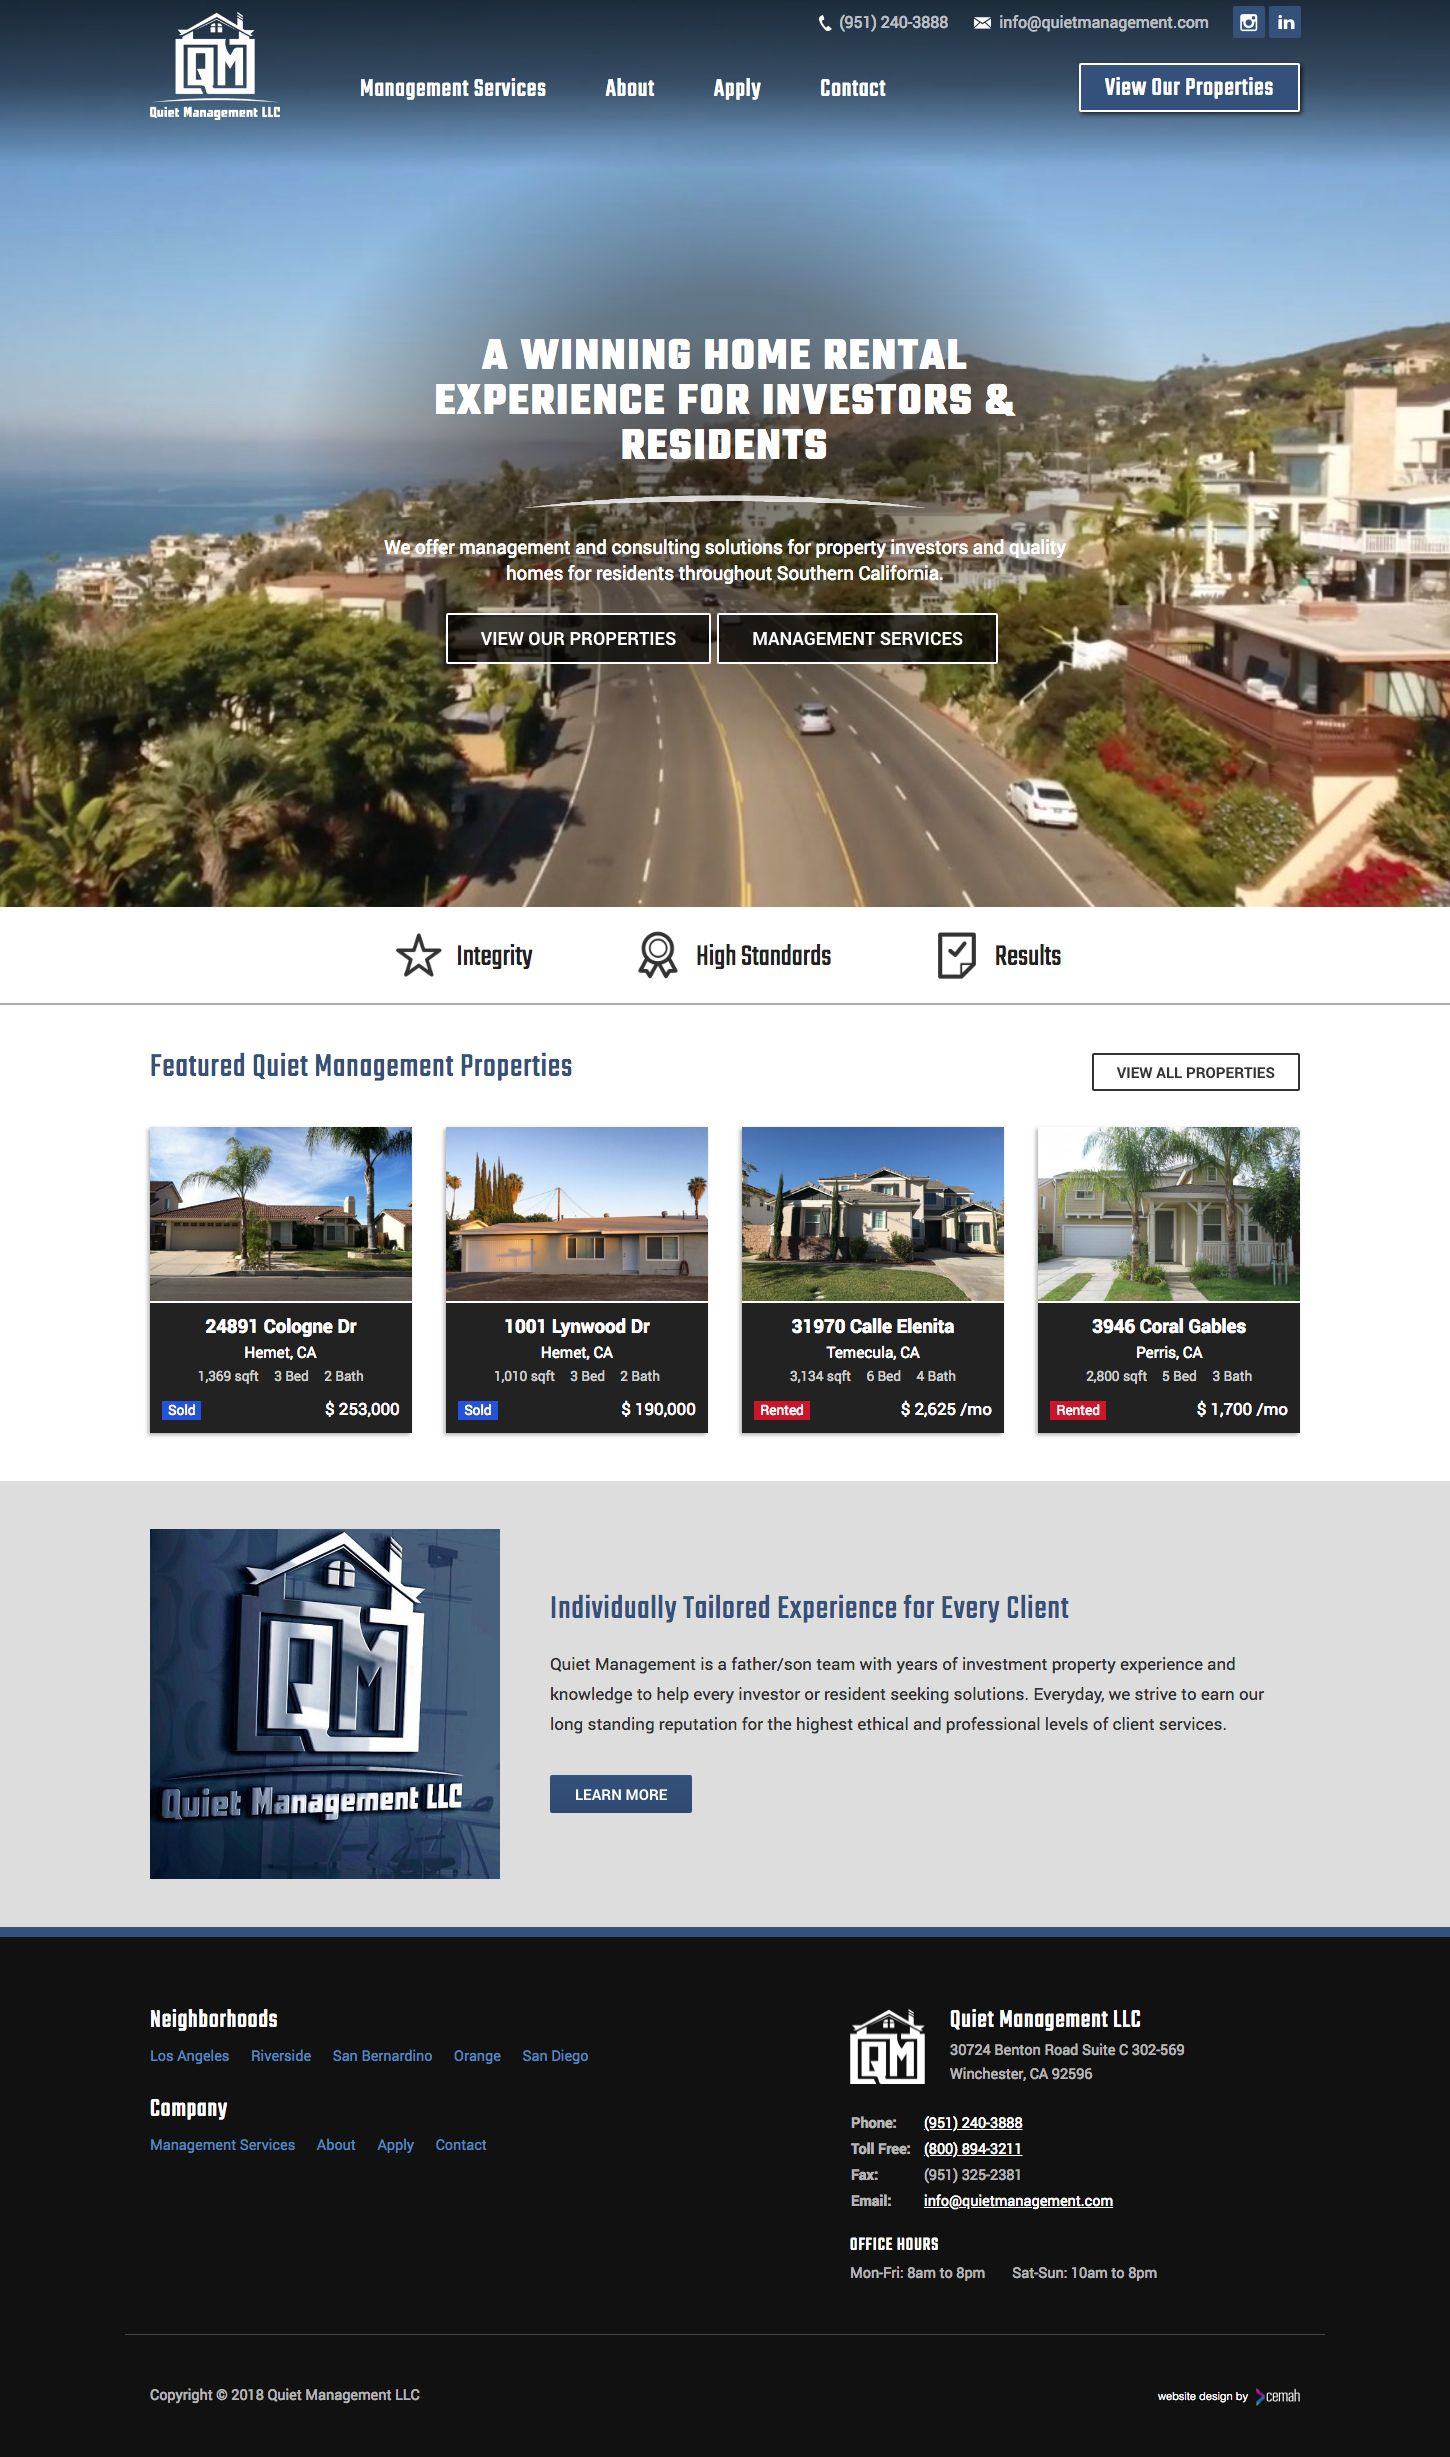 Rental property website design custom layout created for a property management company in Southern California.